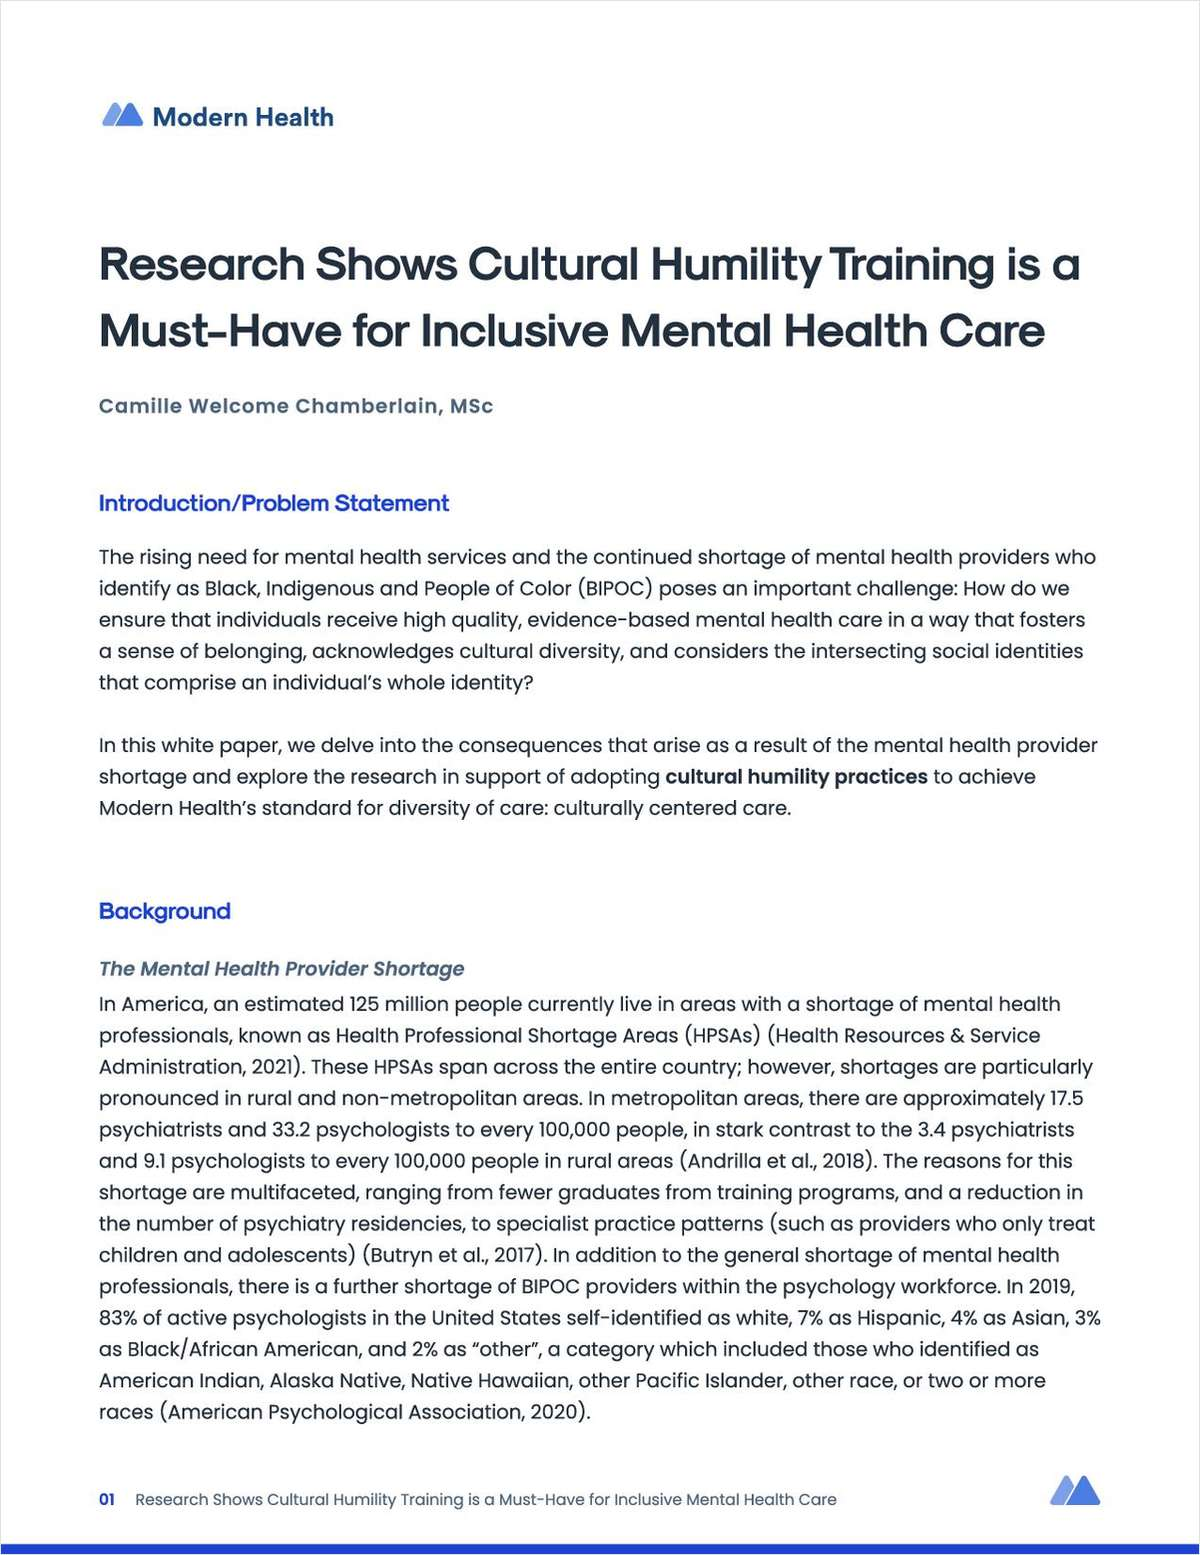 How Cultural Humility Training Bolsters Your Company's Quality Mental Health Care